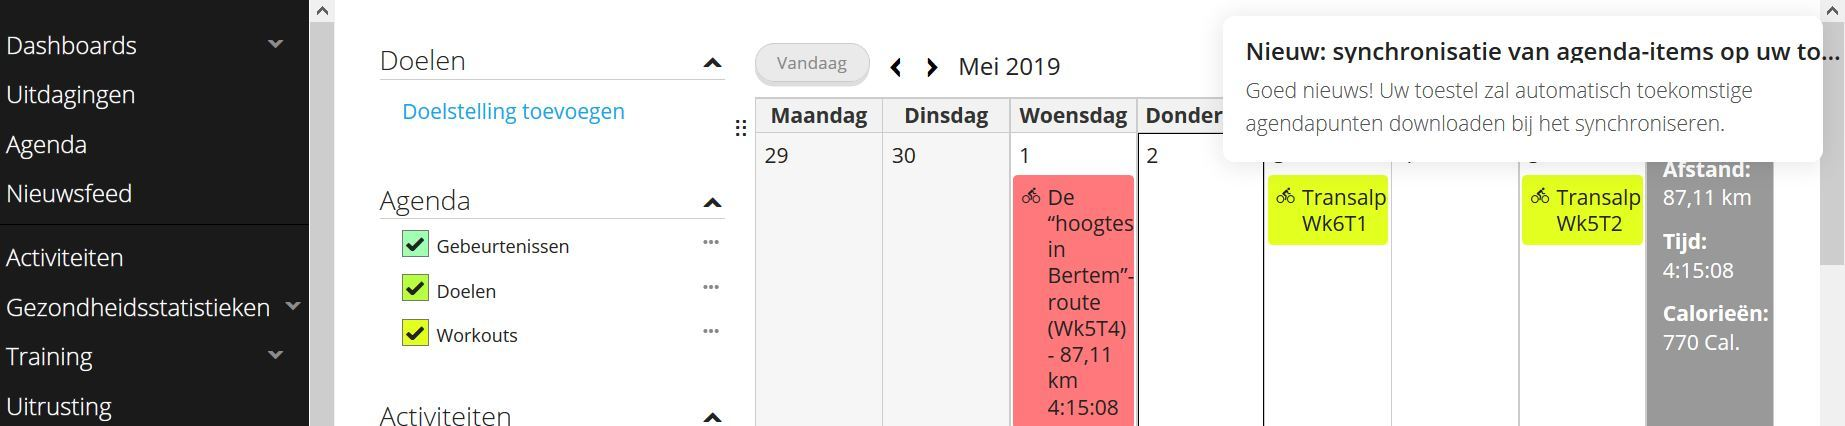 Message blocking view to agenda functions - Garmin Connect Web